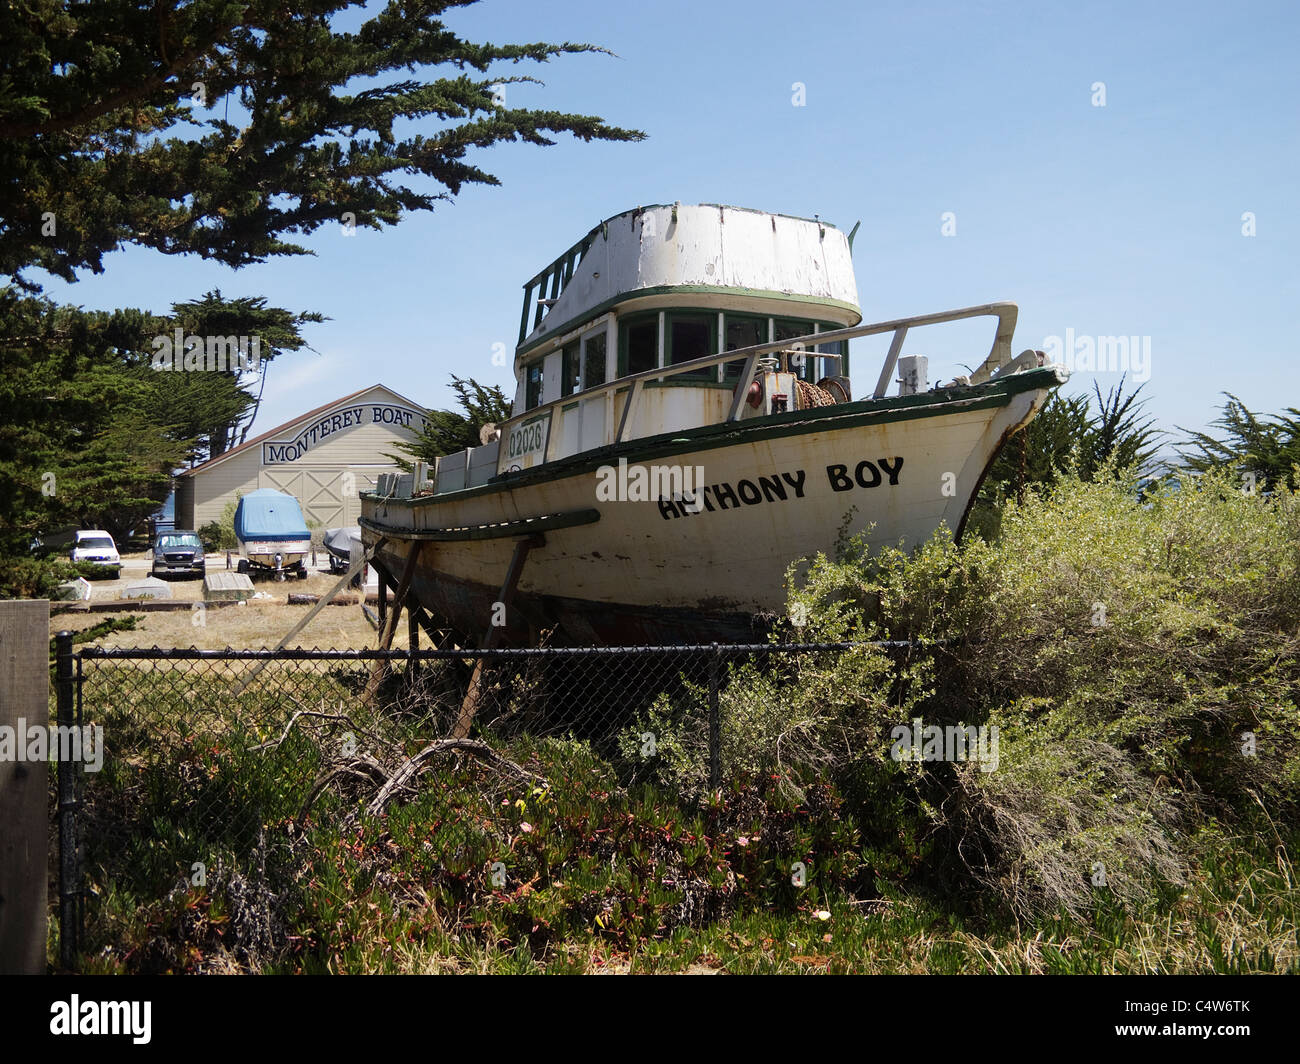 Derelict Boat at Monterey Boat Yard, USA - Stock Image